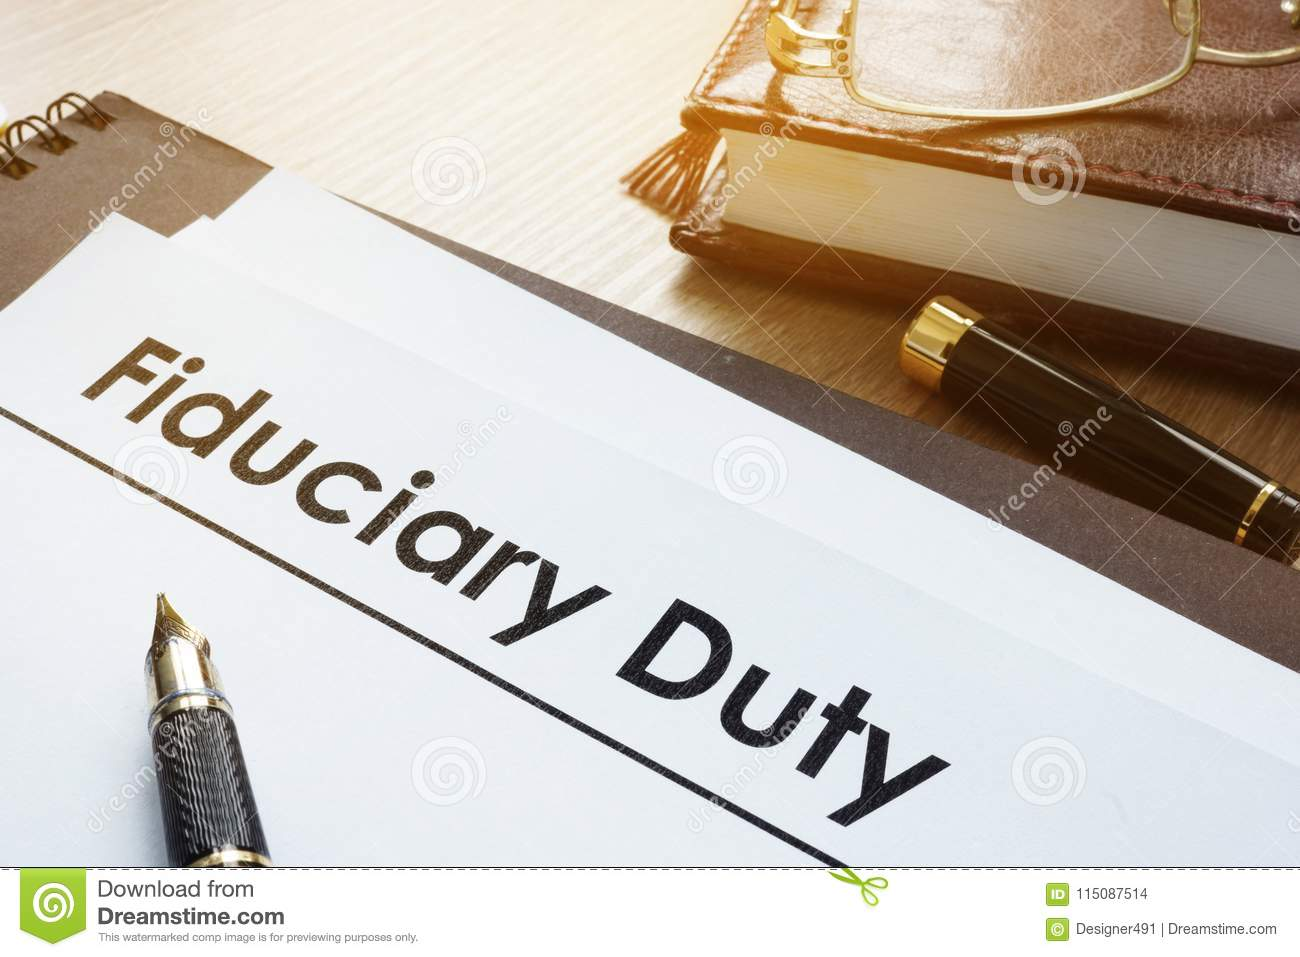 Documents with title fiduciary duty.